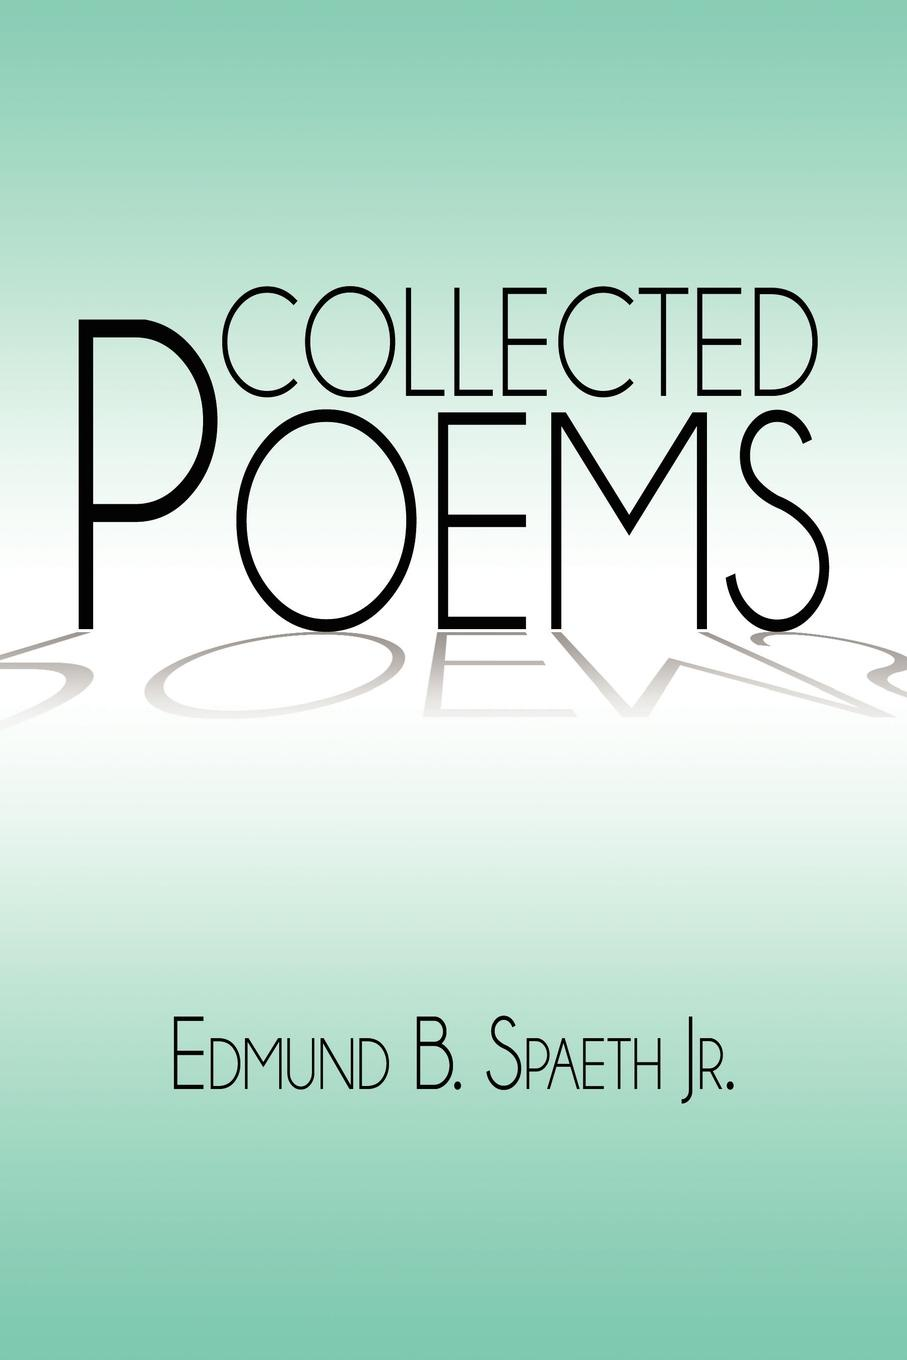 Edmund B. Jr. Spaeth Collected Poems brian patten collected love poems